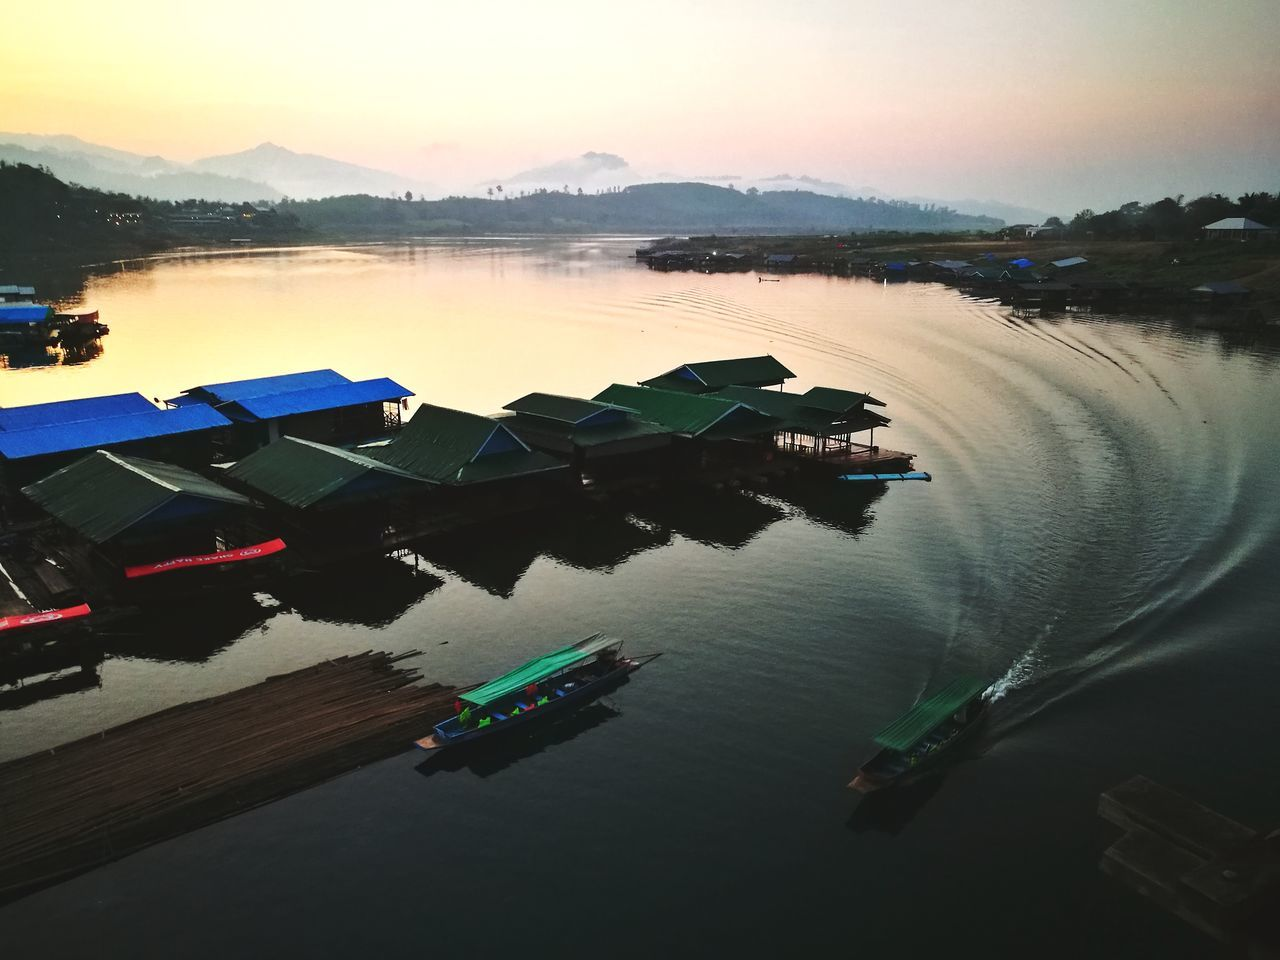 Life In Motion Life Is Beautiful Water Reflection Sunset Lake Dusk Tranquility Nature Outdoors Mountain Sky Social Issues Harbor No People Floating On Water Beauty In NatureDay Boats And Water Travel Photography Boat Dock Boathouse Boating Lake Life